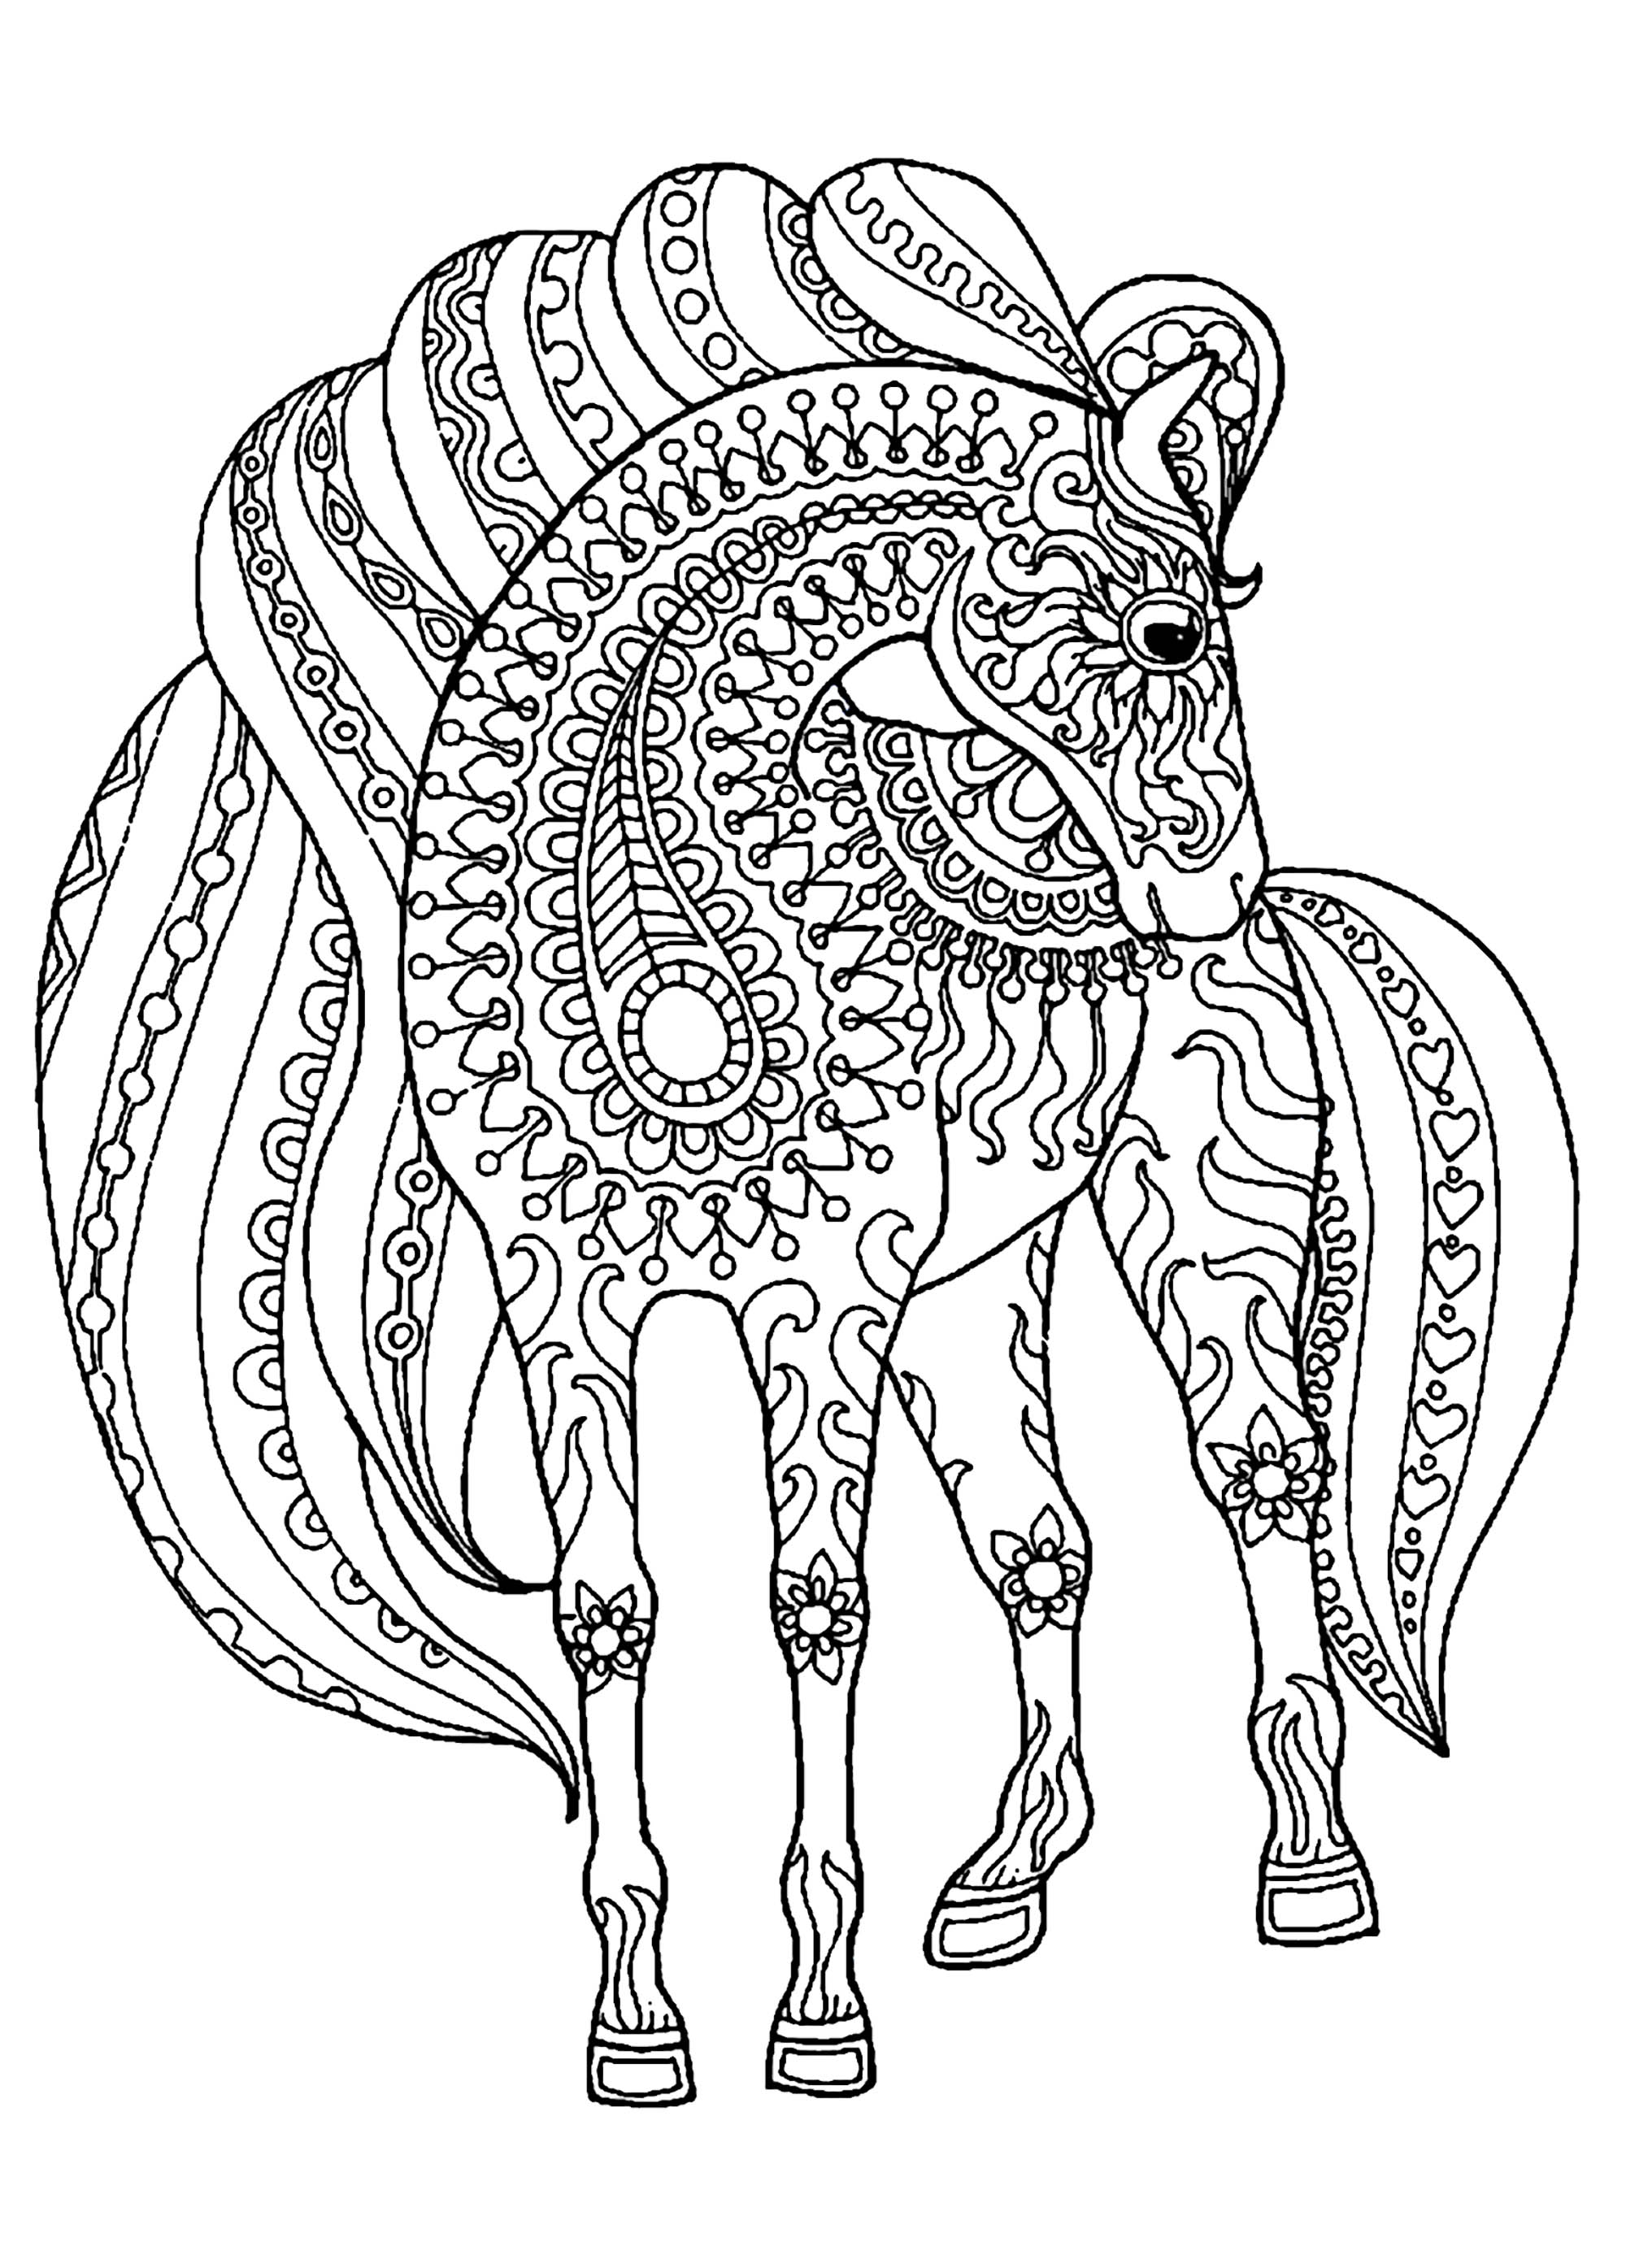 zentangle patterns free printable blanksheet for pattern collections with images printable free patterns zentangle